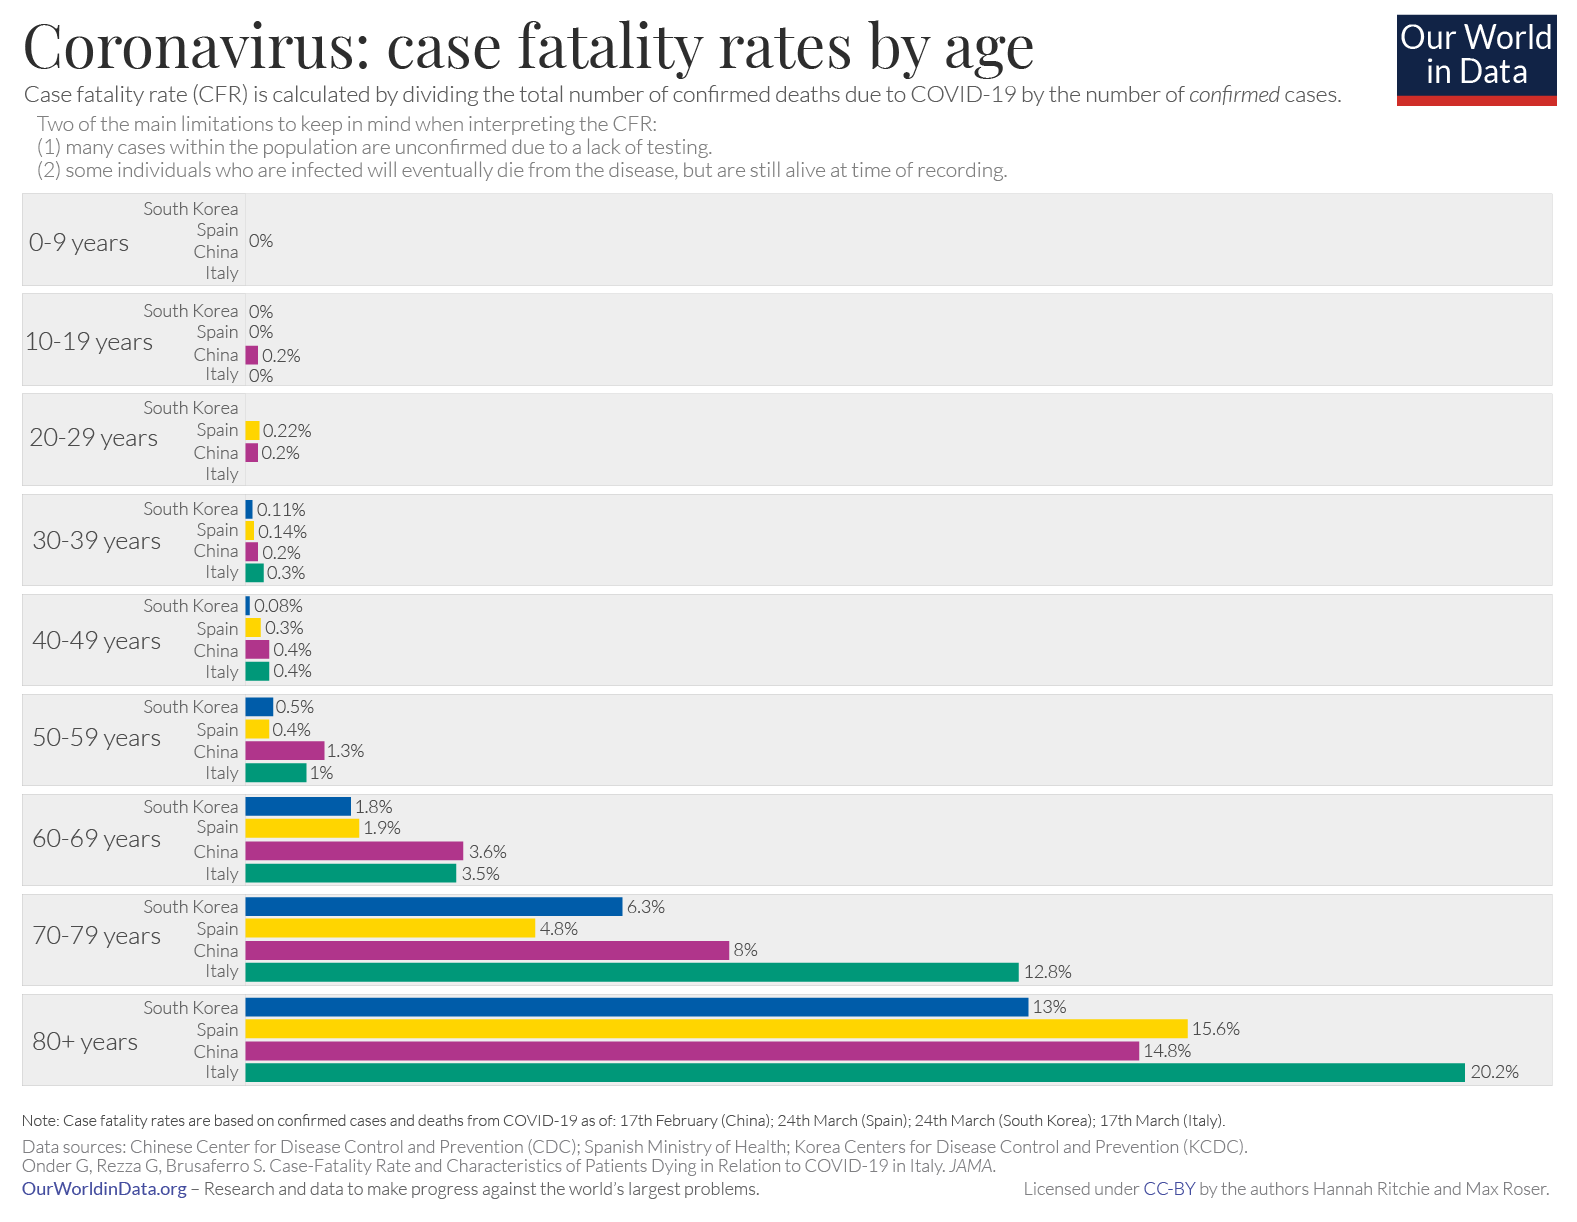 COVID-19 Case fatality rates by age